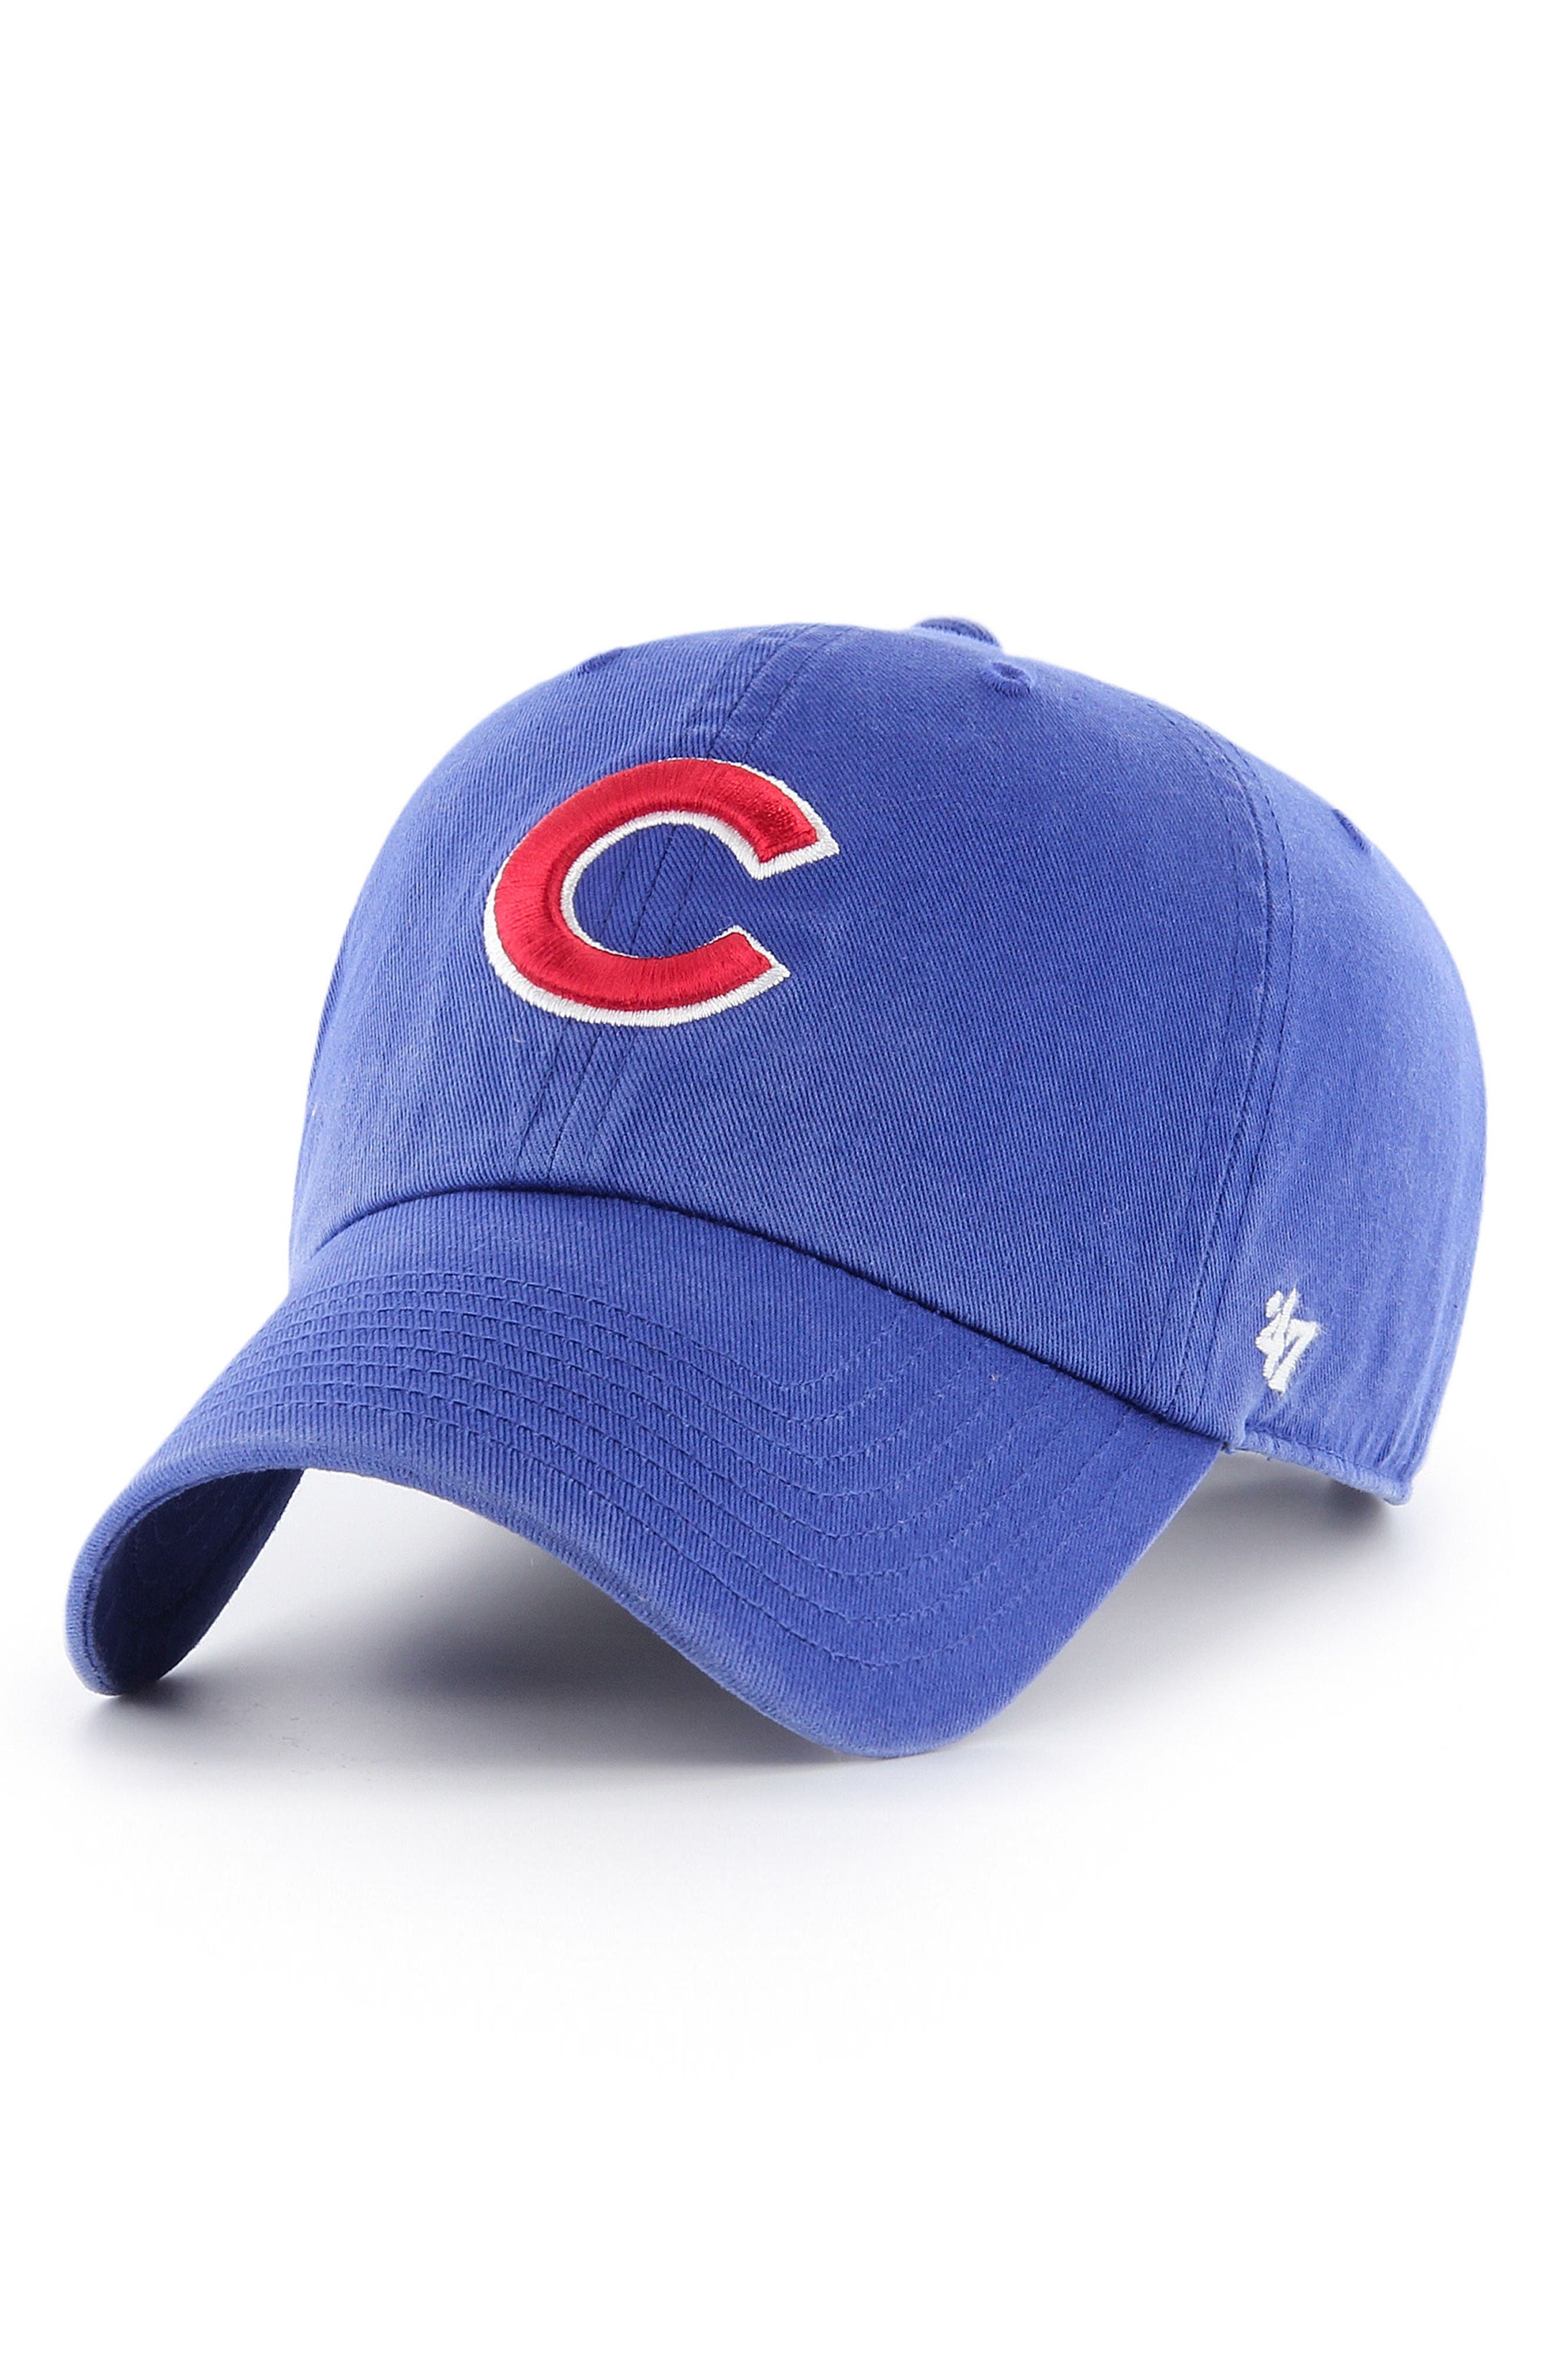 Alternate Image 1 Selected - '47 Clean Up - Chicago Cubs Baseball Cap